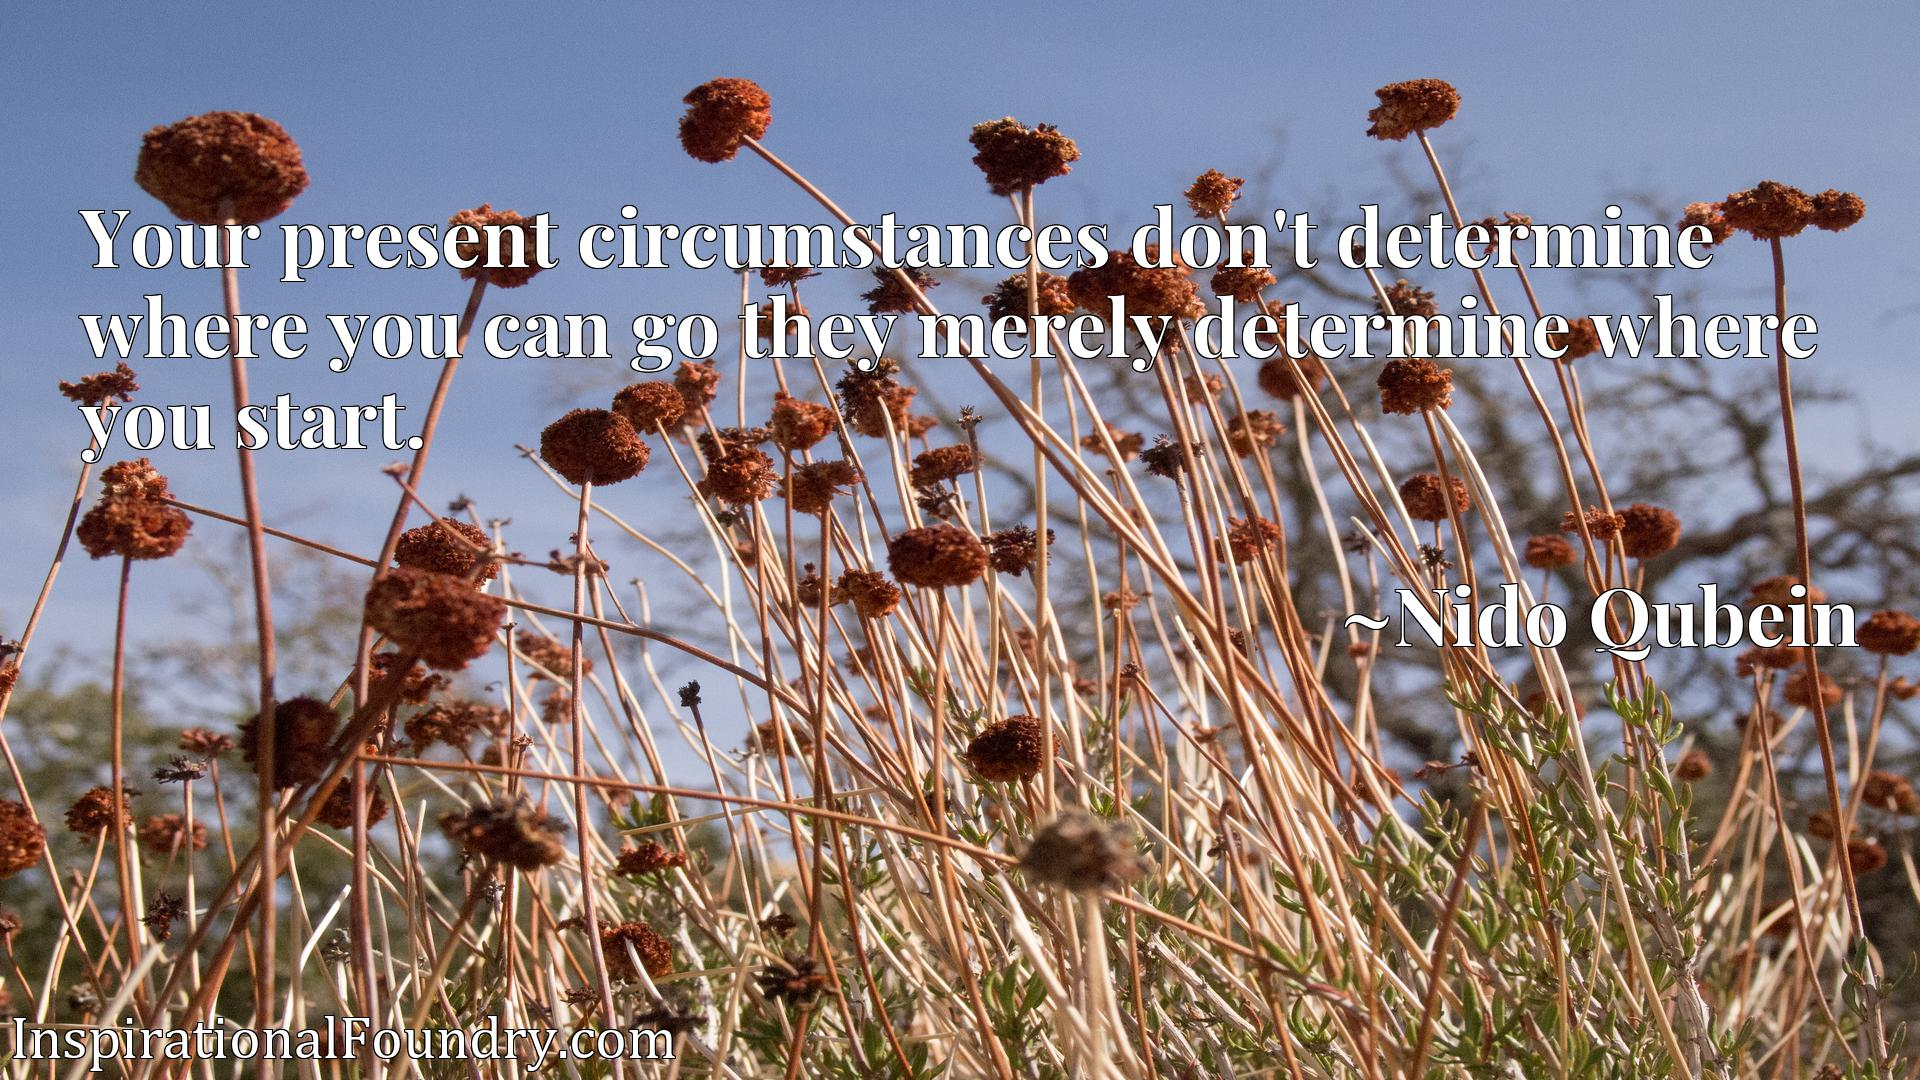 Your present circumstances don't determine where you can go they merely determine where you start.